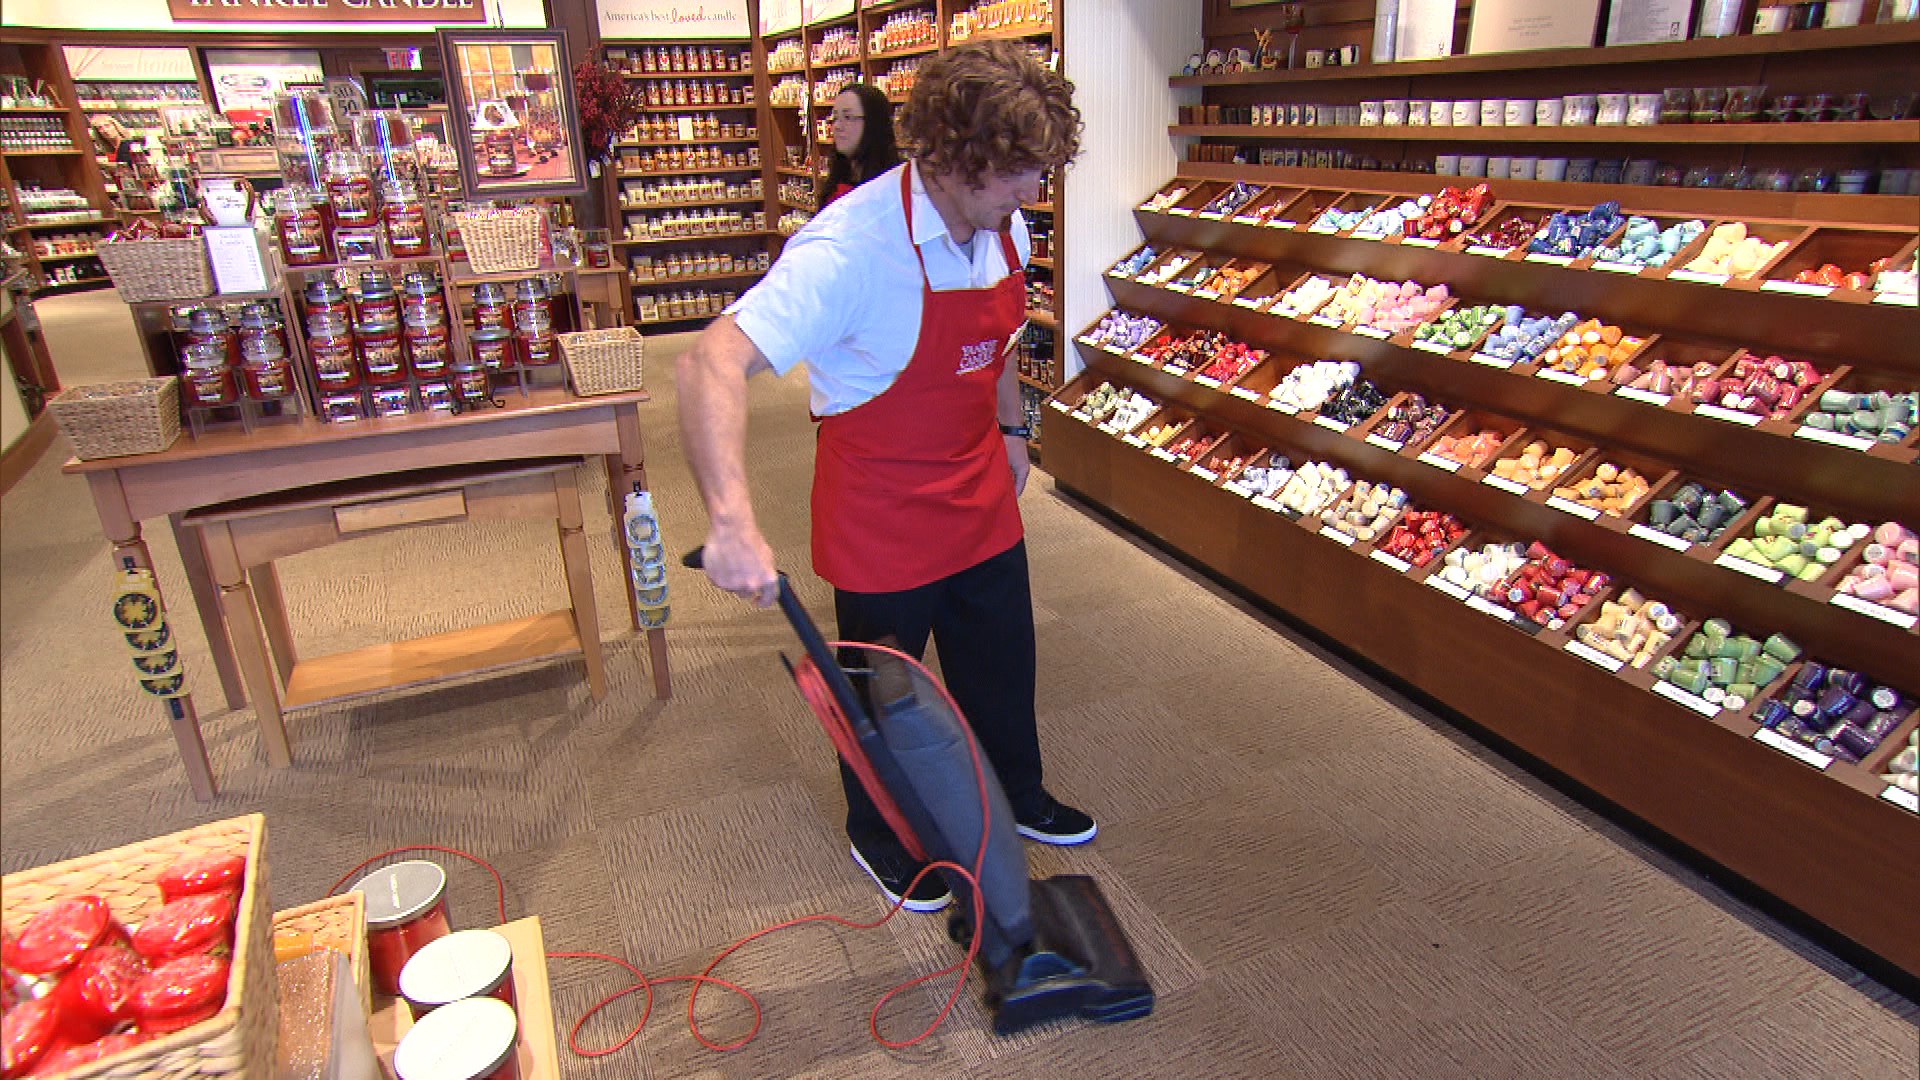 Vacuuming the Store